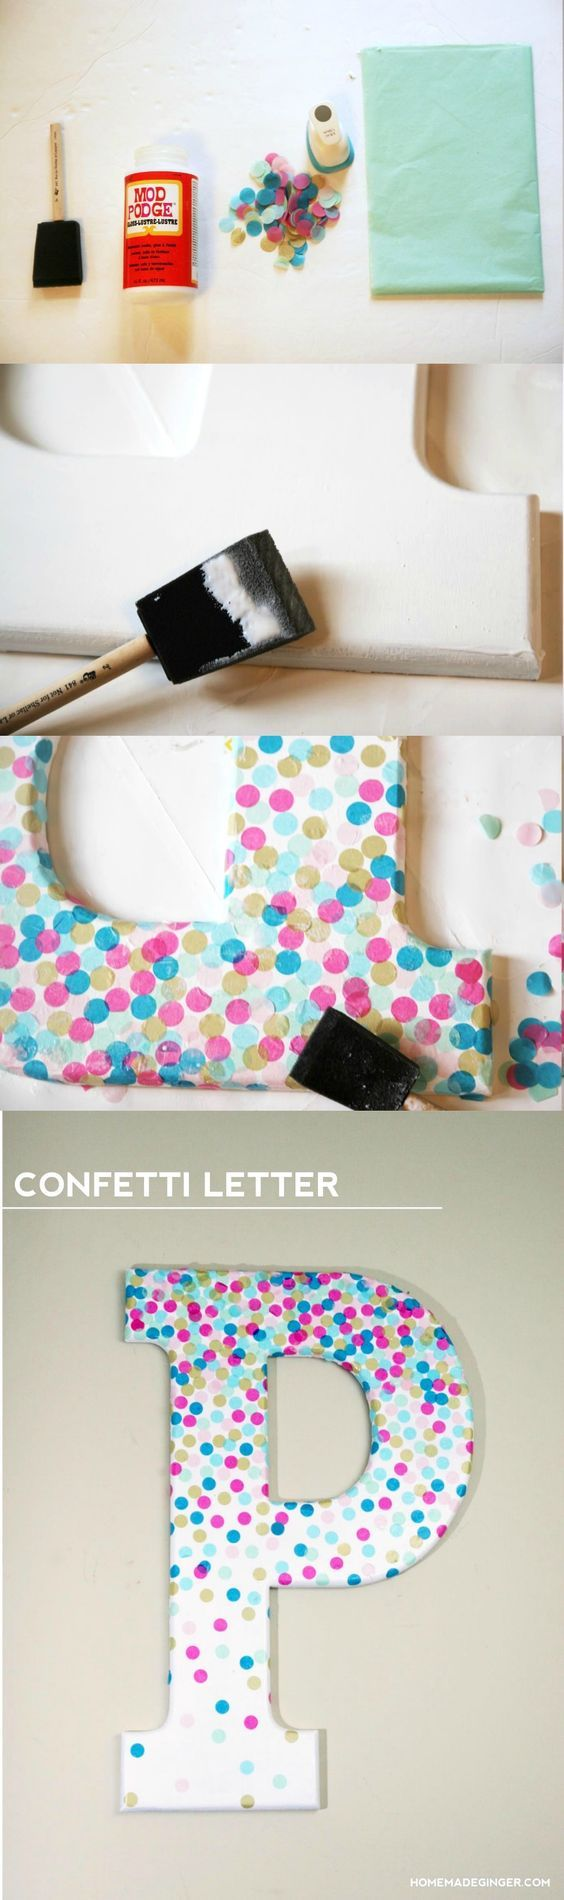 Foam letters for crafts - Diy Confetti Letter For Home Decor